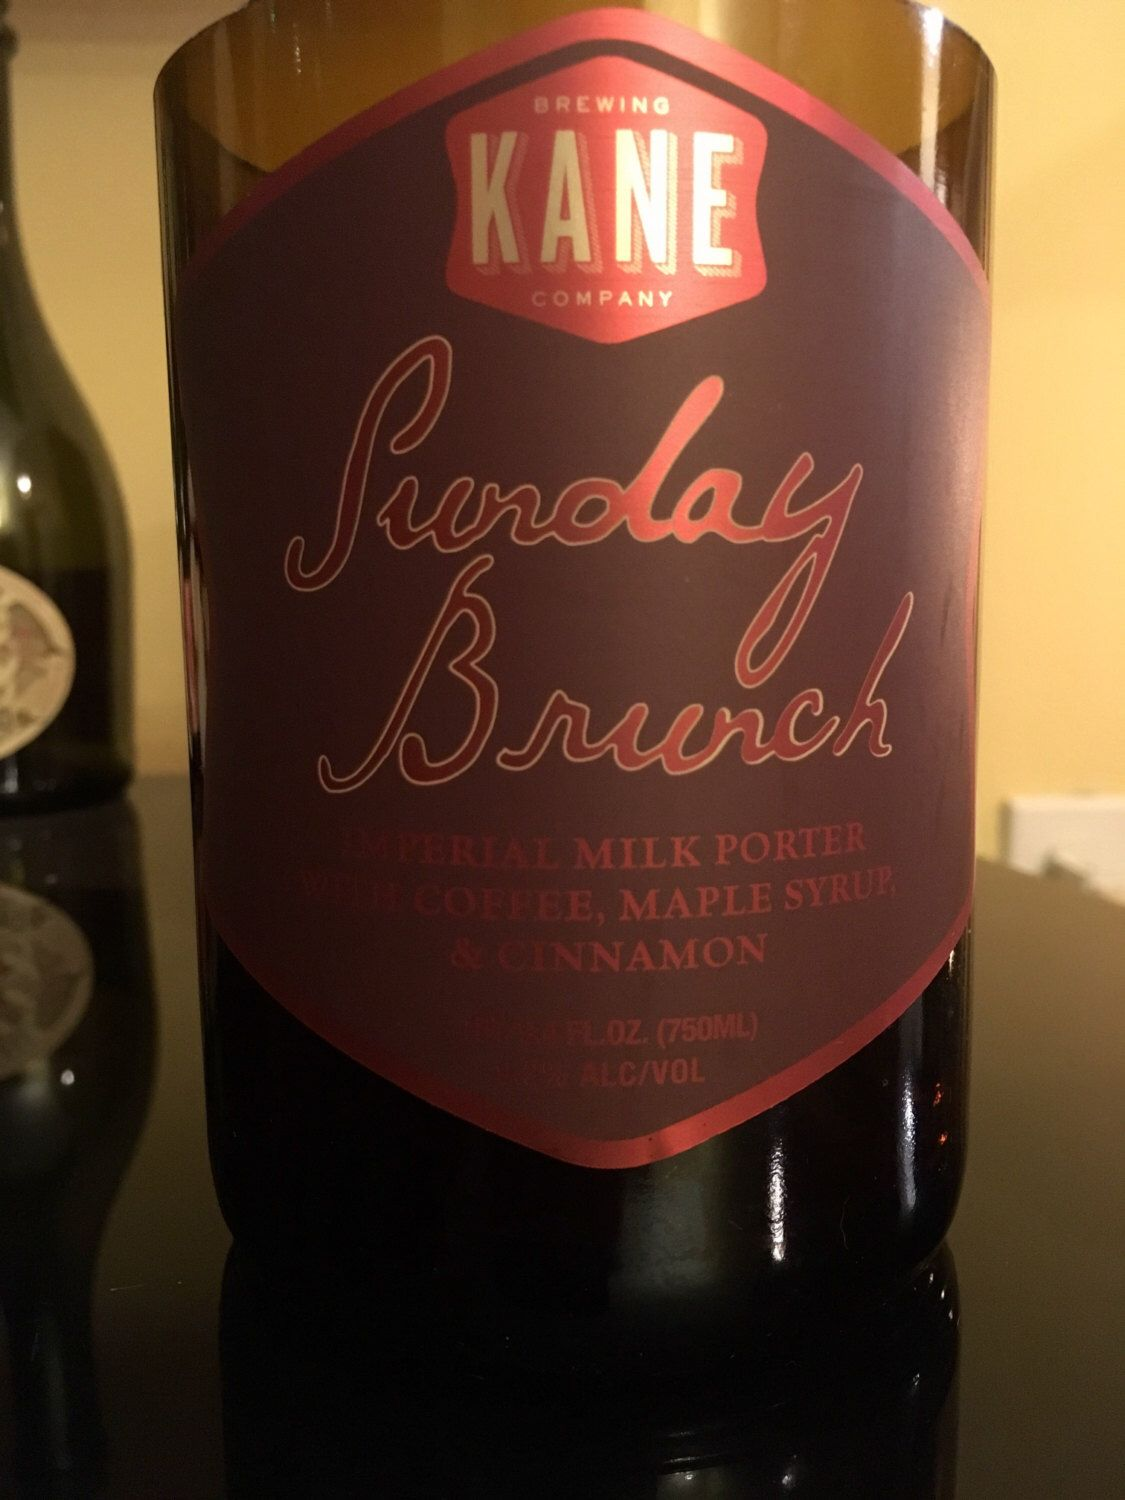 kane brewing beer candle sunday brunch brunch and brewing beer